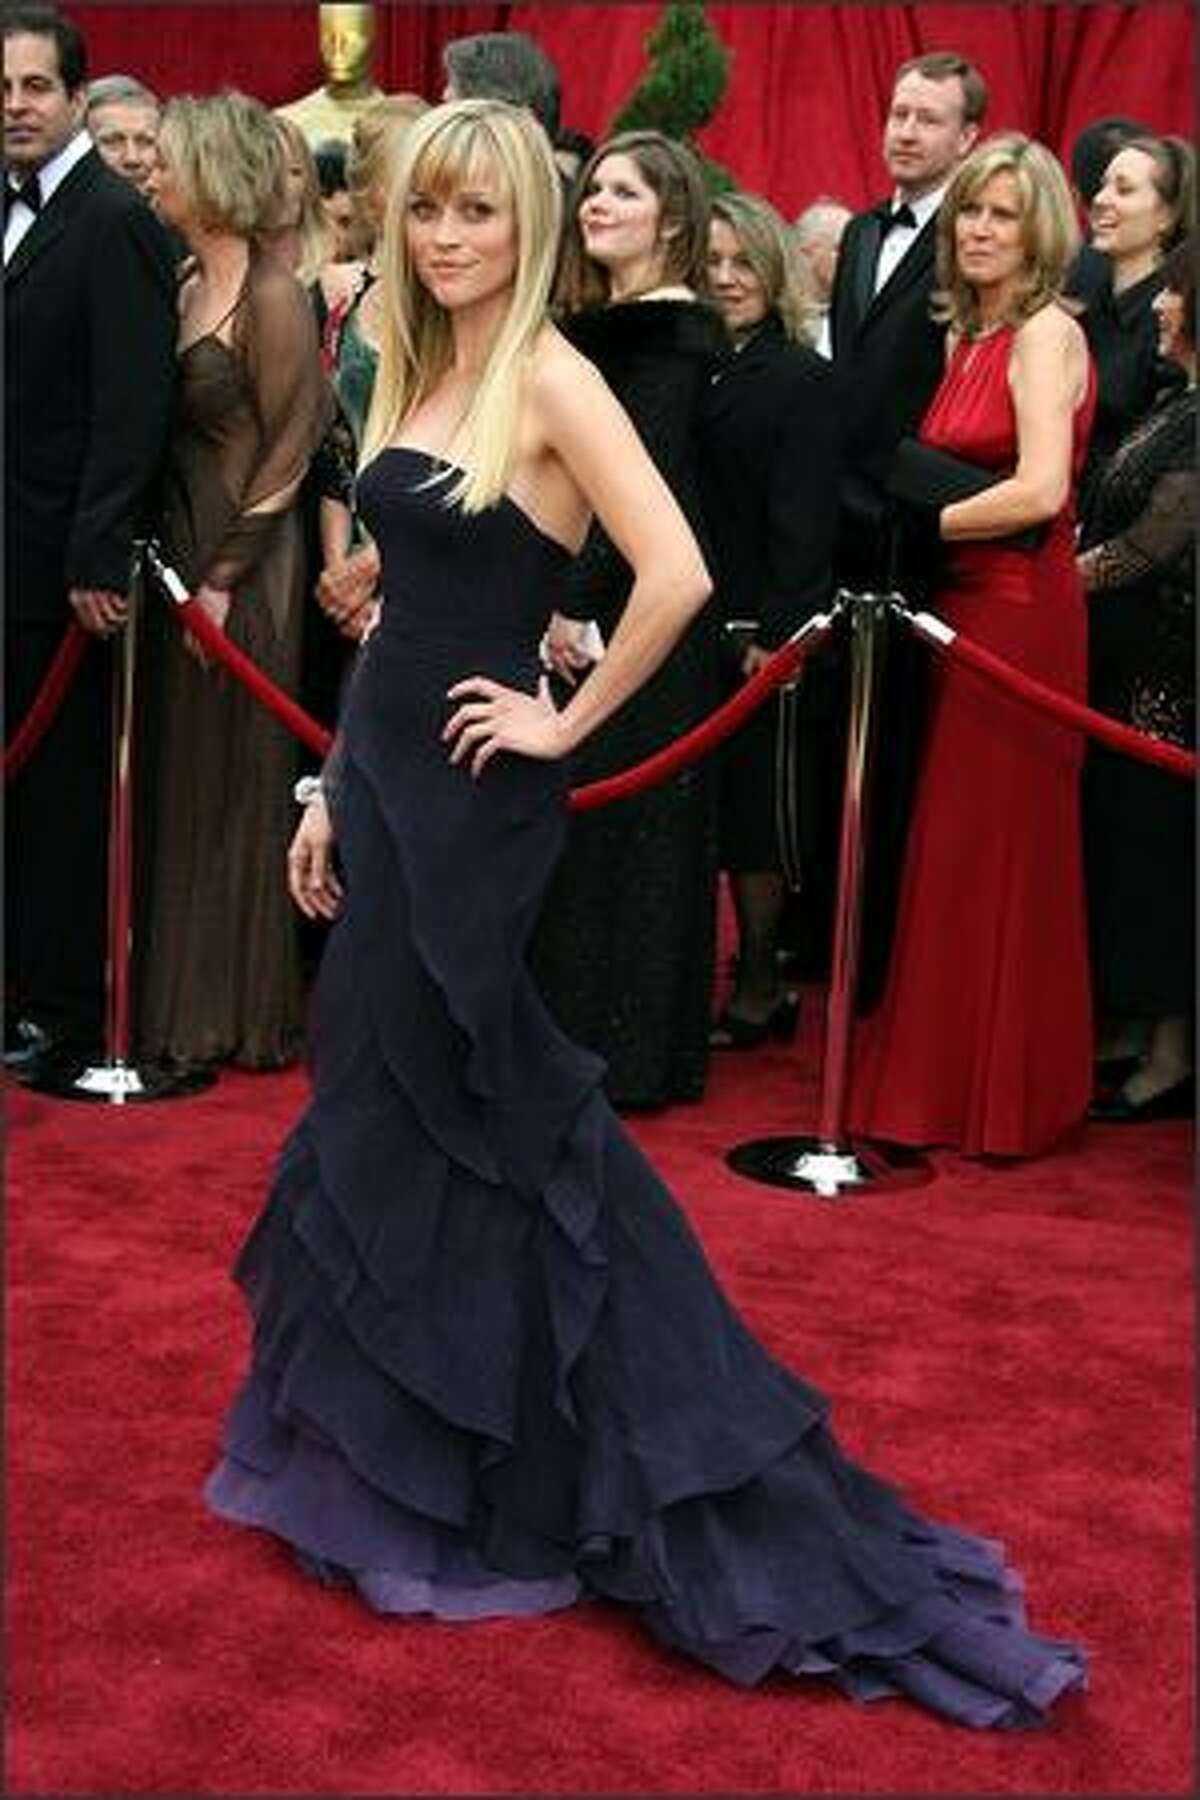 Actress Reese Witherspoon attend the 79th Annual Academy Awards. (Frazer Harrison/Getty Images)